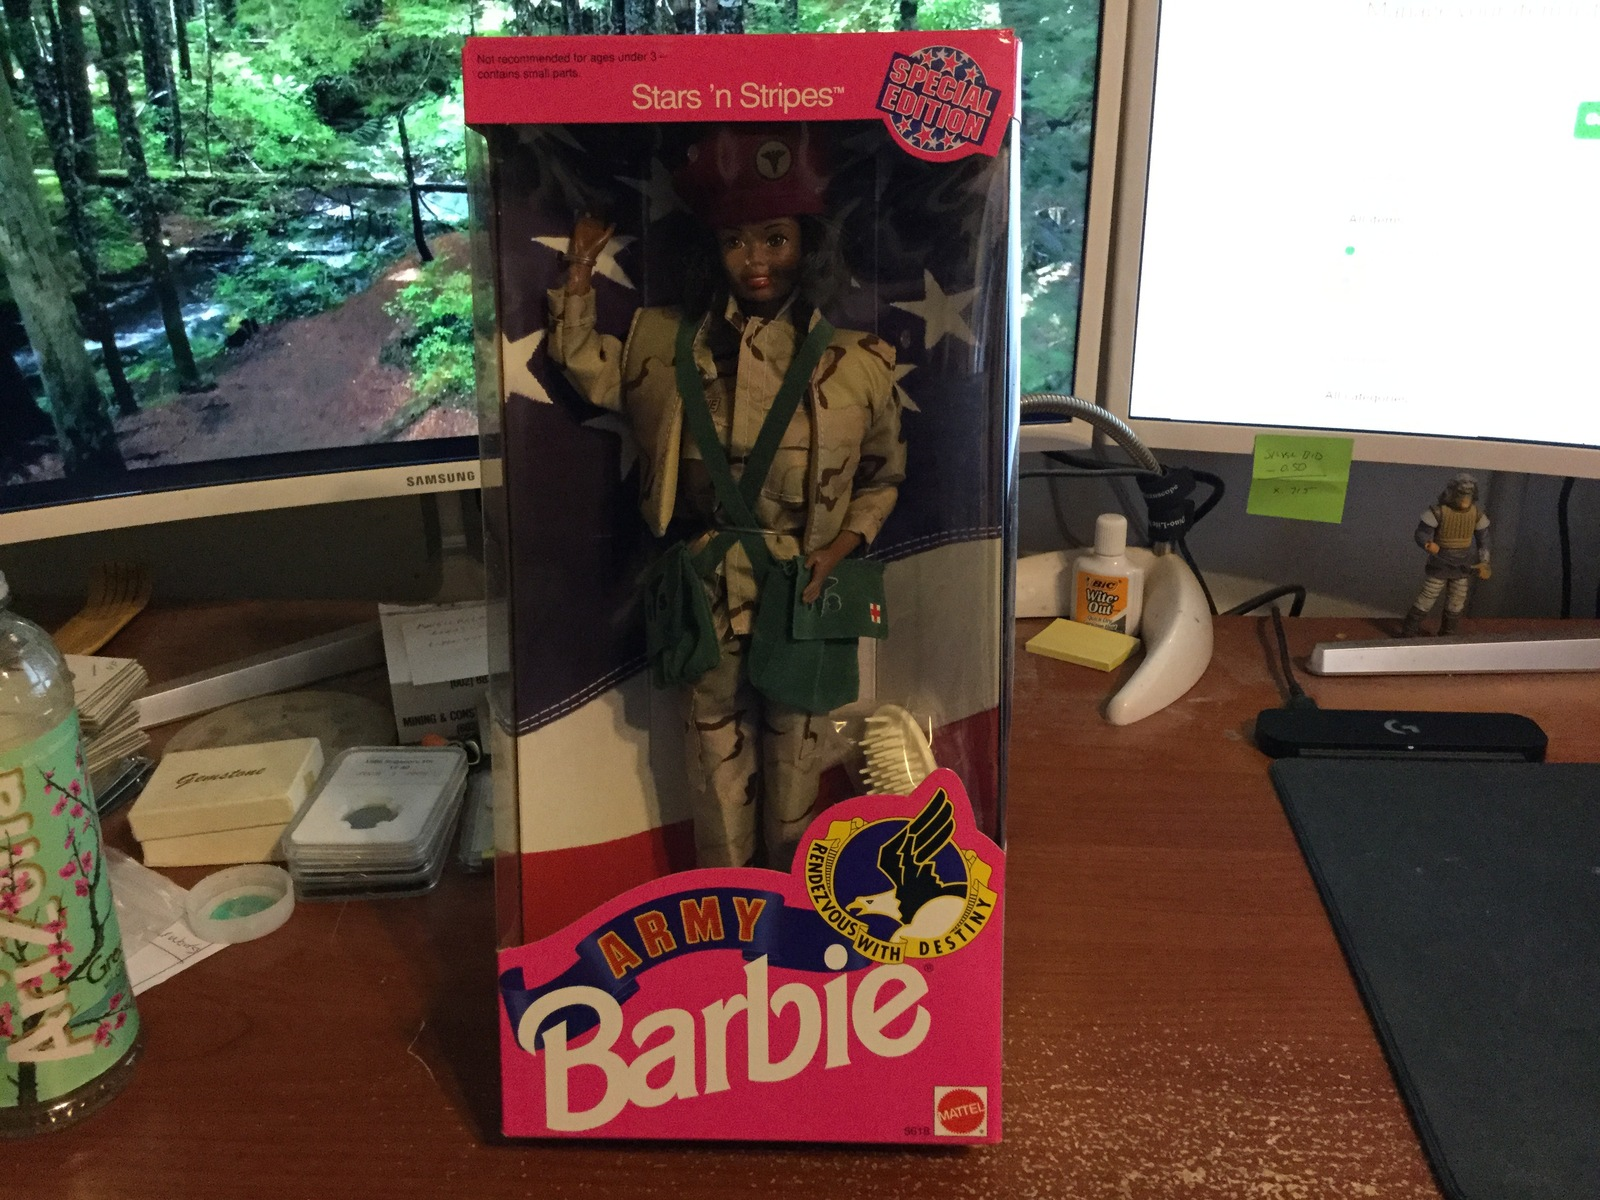 Primary image for 1992 Mattel Stars 'n Stripes African American Army Barbie Doll #5618 NIB